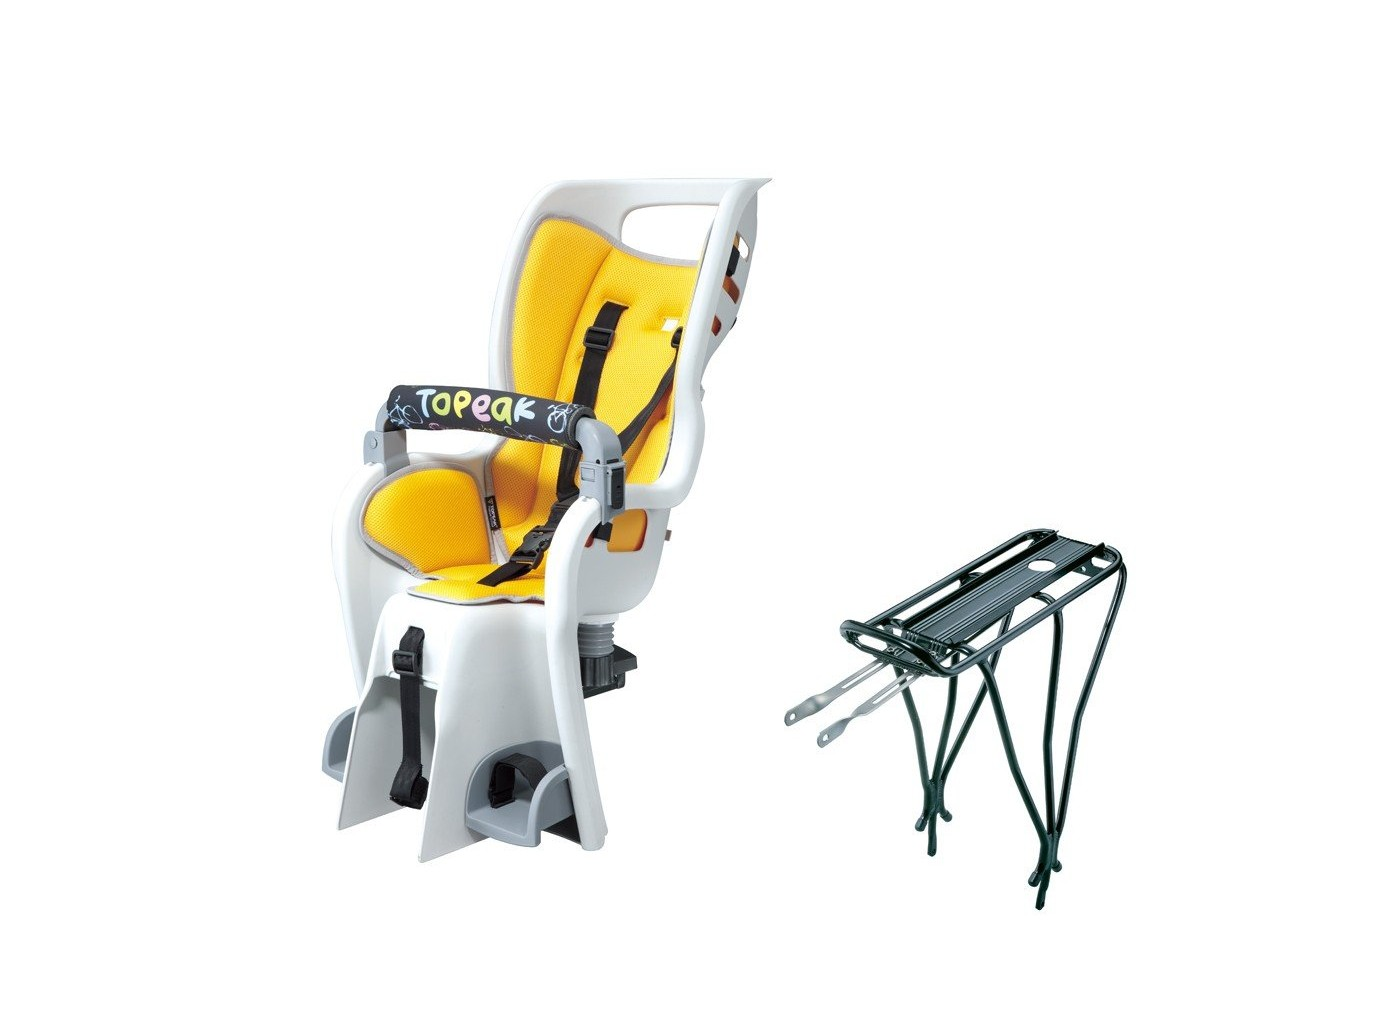 Si ge enfant babyseat ii pad jaune w rack 26 for Siege enfant